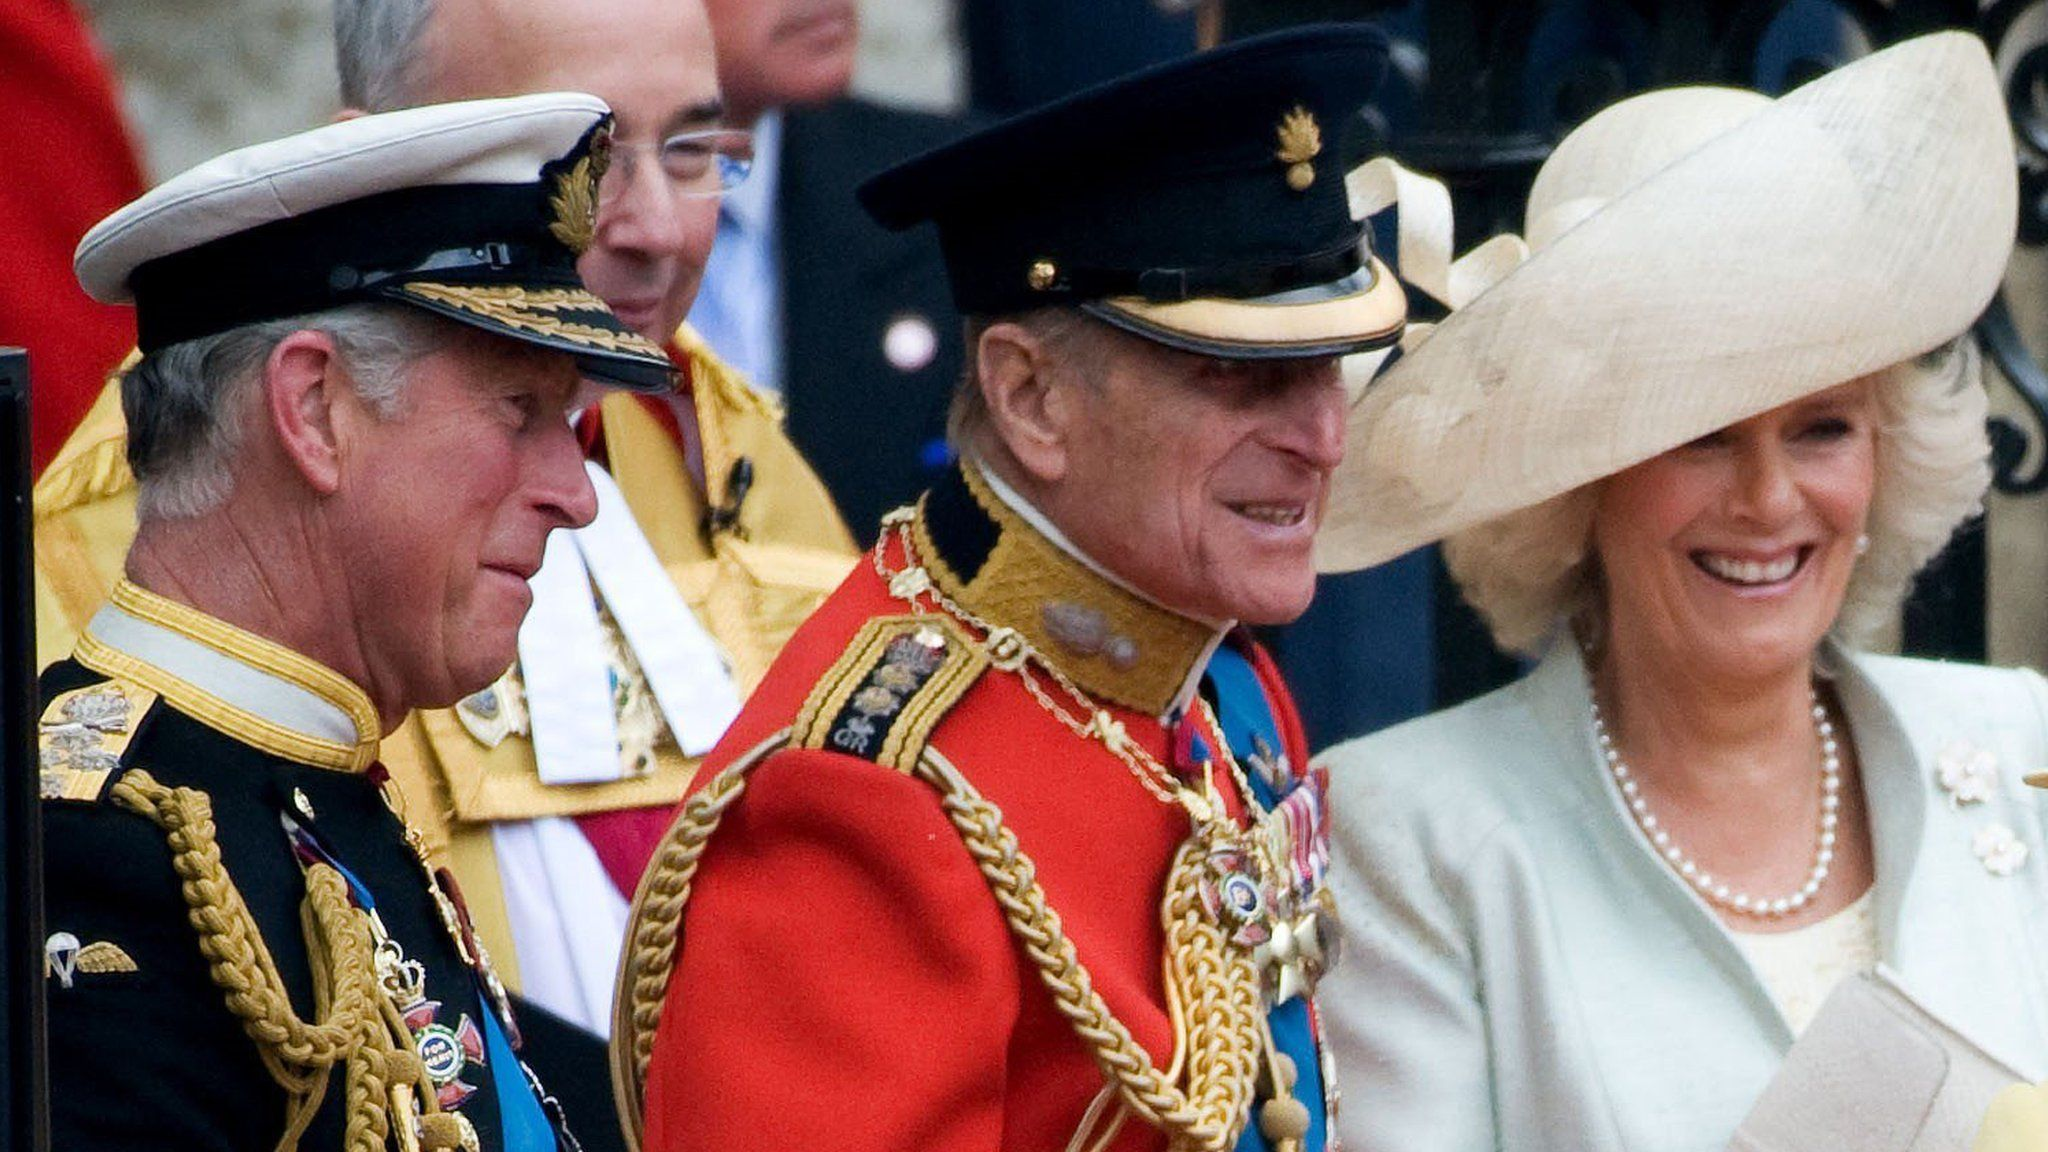 Image released by Clarence House 14/04/2021 of the Duke of Edinburgh, Prince Charles and Camilla in 2011